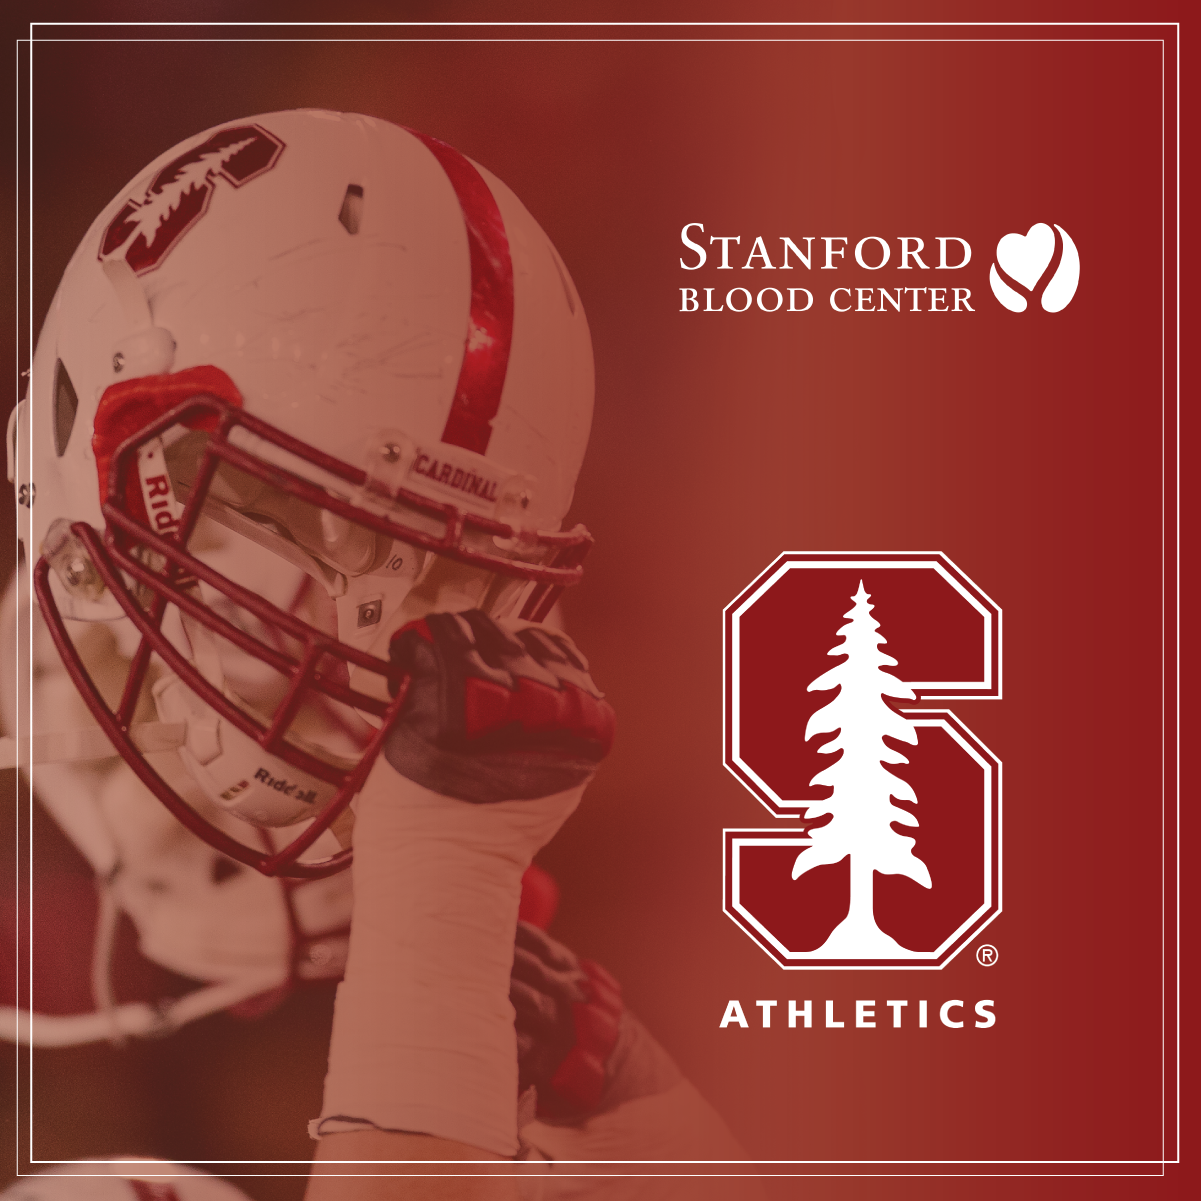 Donate blood in July or August and you'll receive FOUR free tickets to a select Stanford Athletics event!